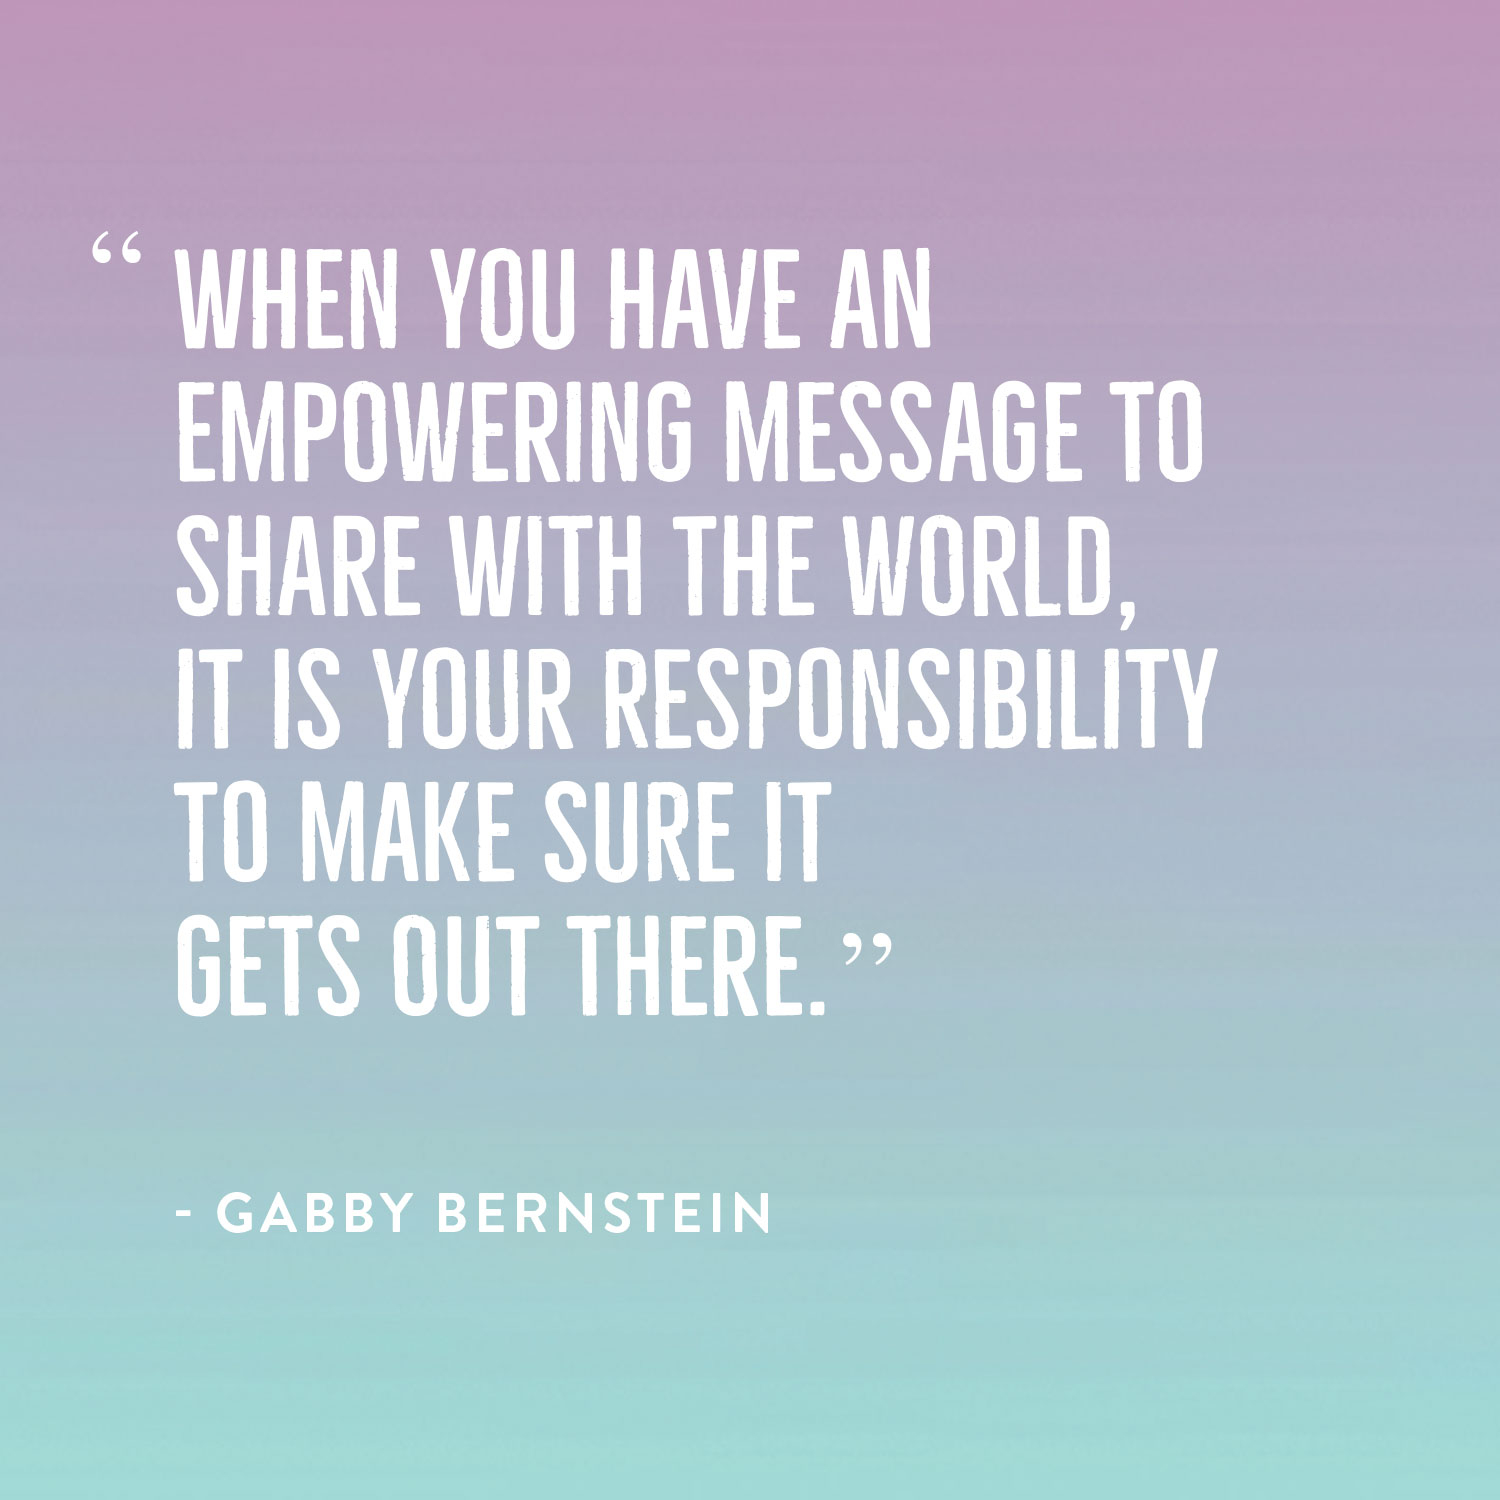 When you have an empowering message to share, it's your responsibility to get it out there | Gabby Bernstein